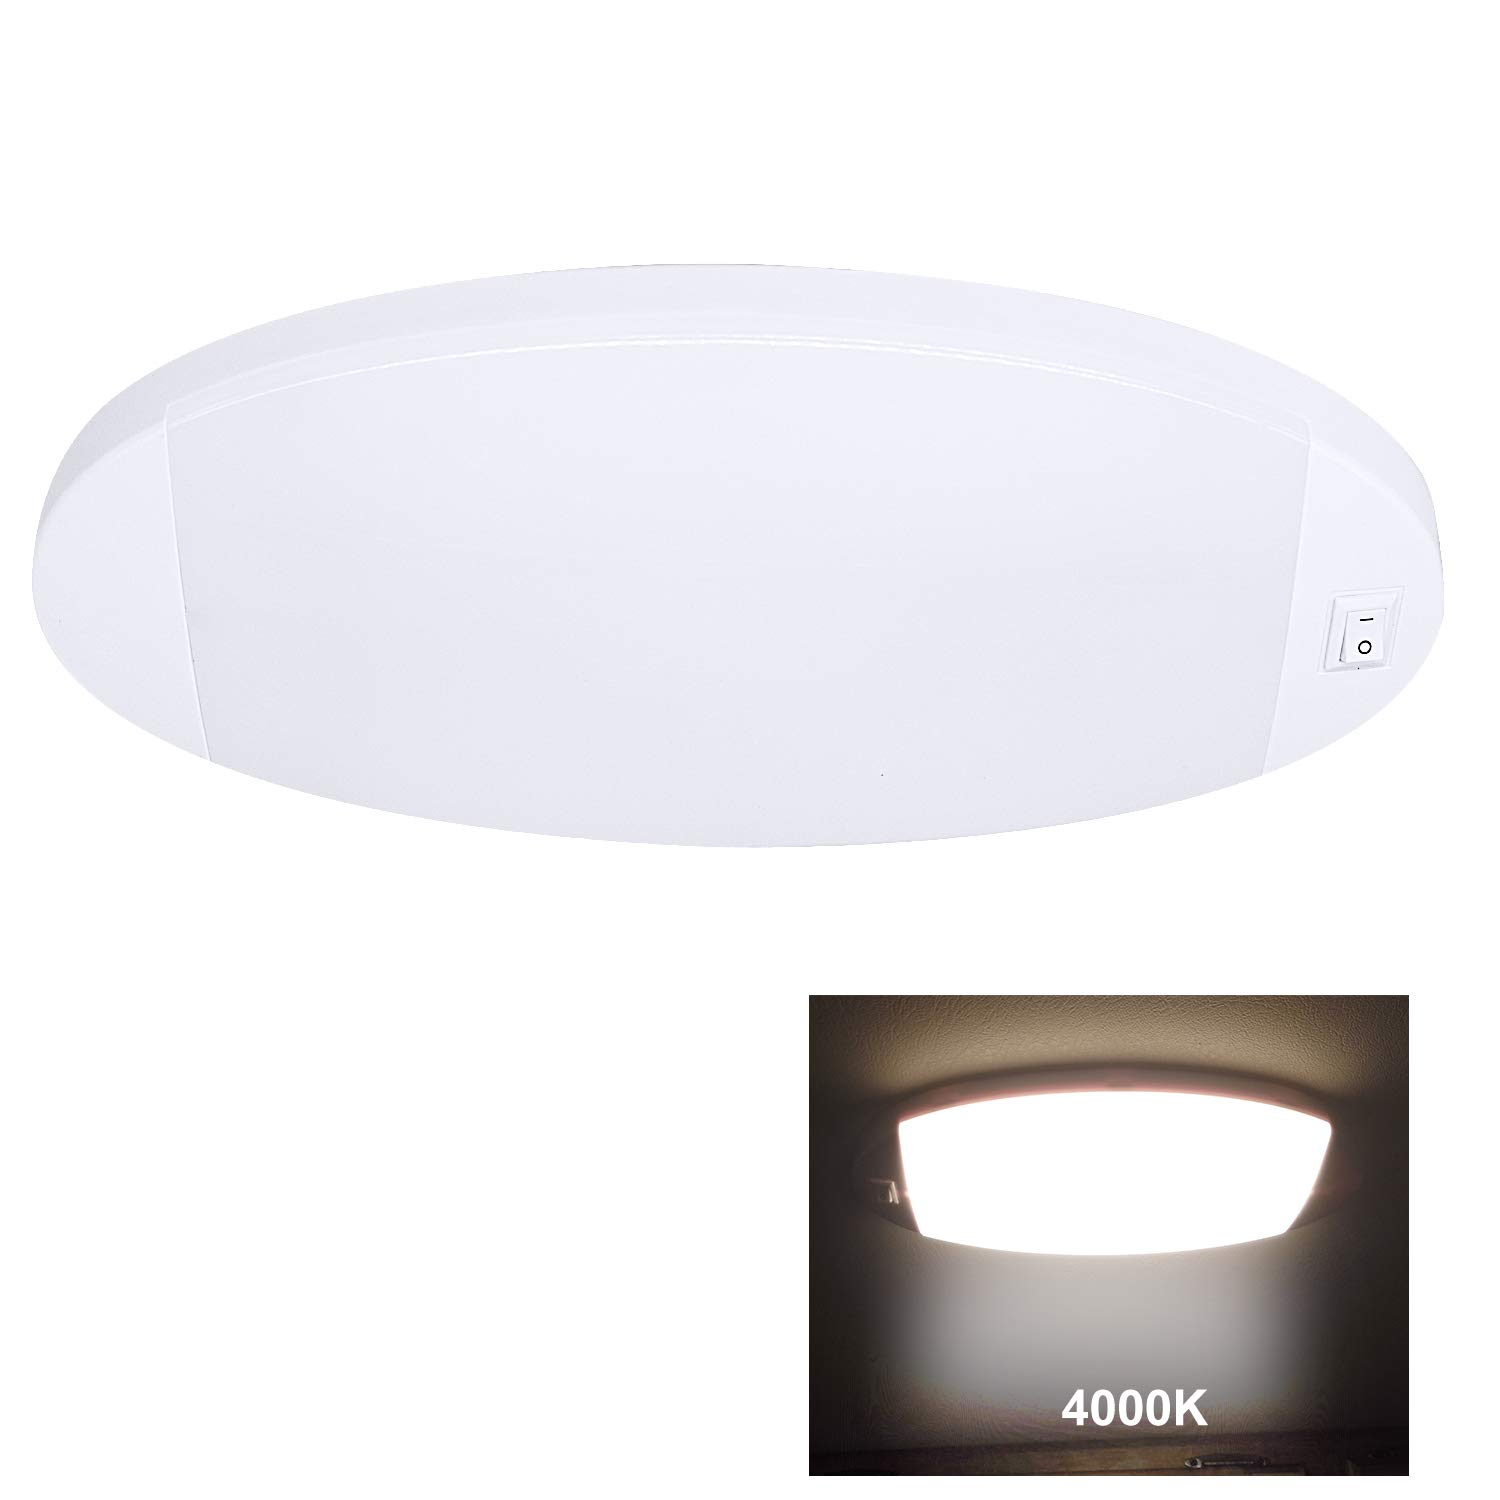 Facon Dimmable LED Puck Light Surface Mount Dome Light with Touch Dimmer Switch 12V DC Interior Light for RV Motorhome Camper Caravan Marine